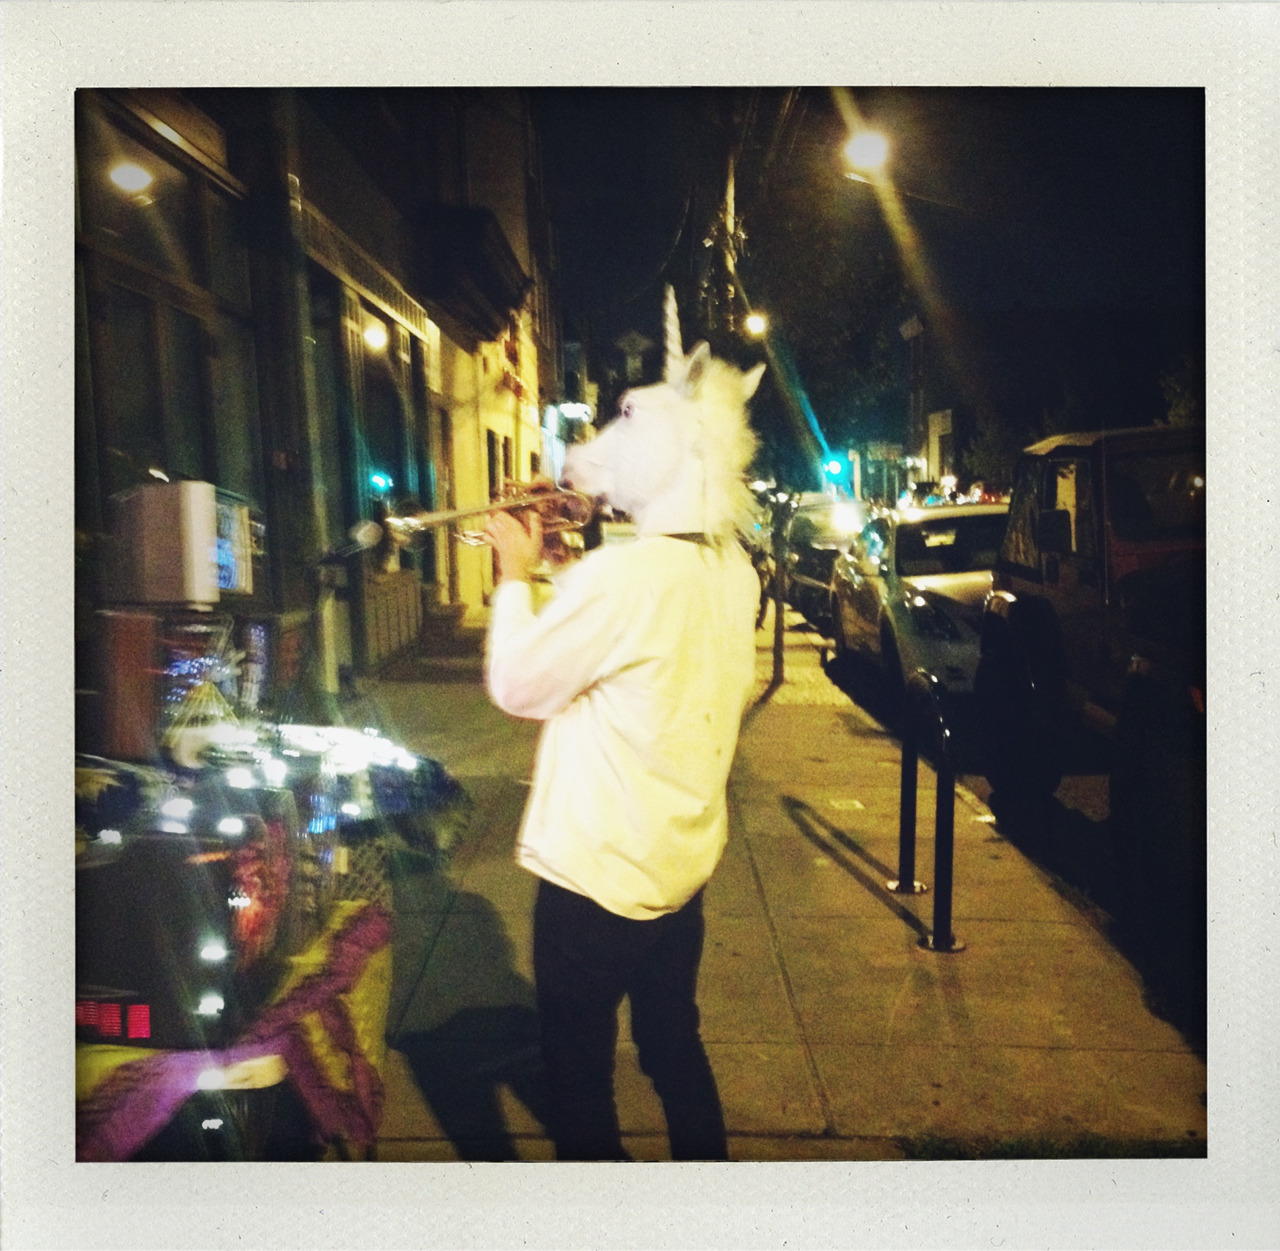 The unicorn man playing his trumpet in Fishtown.